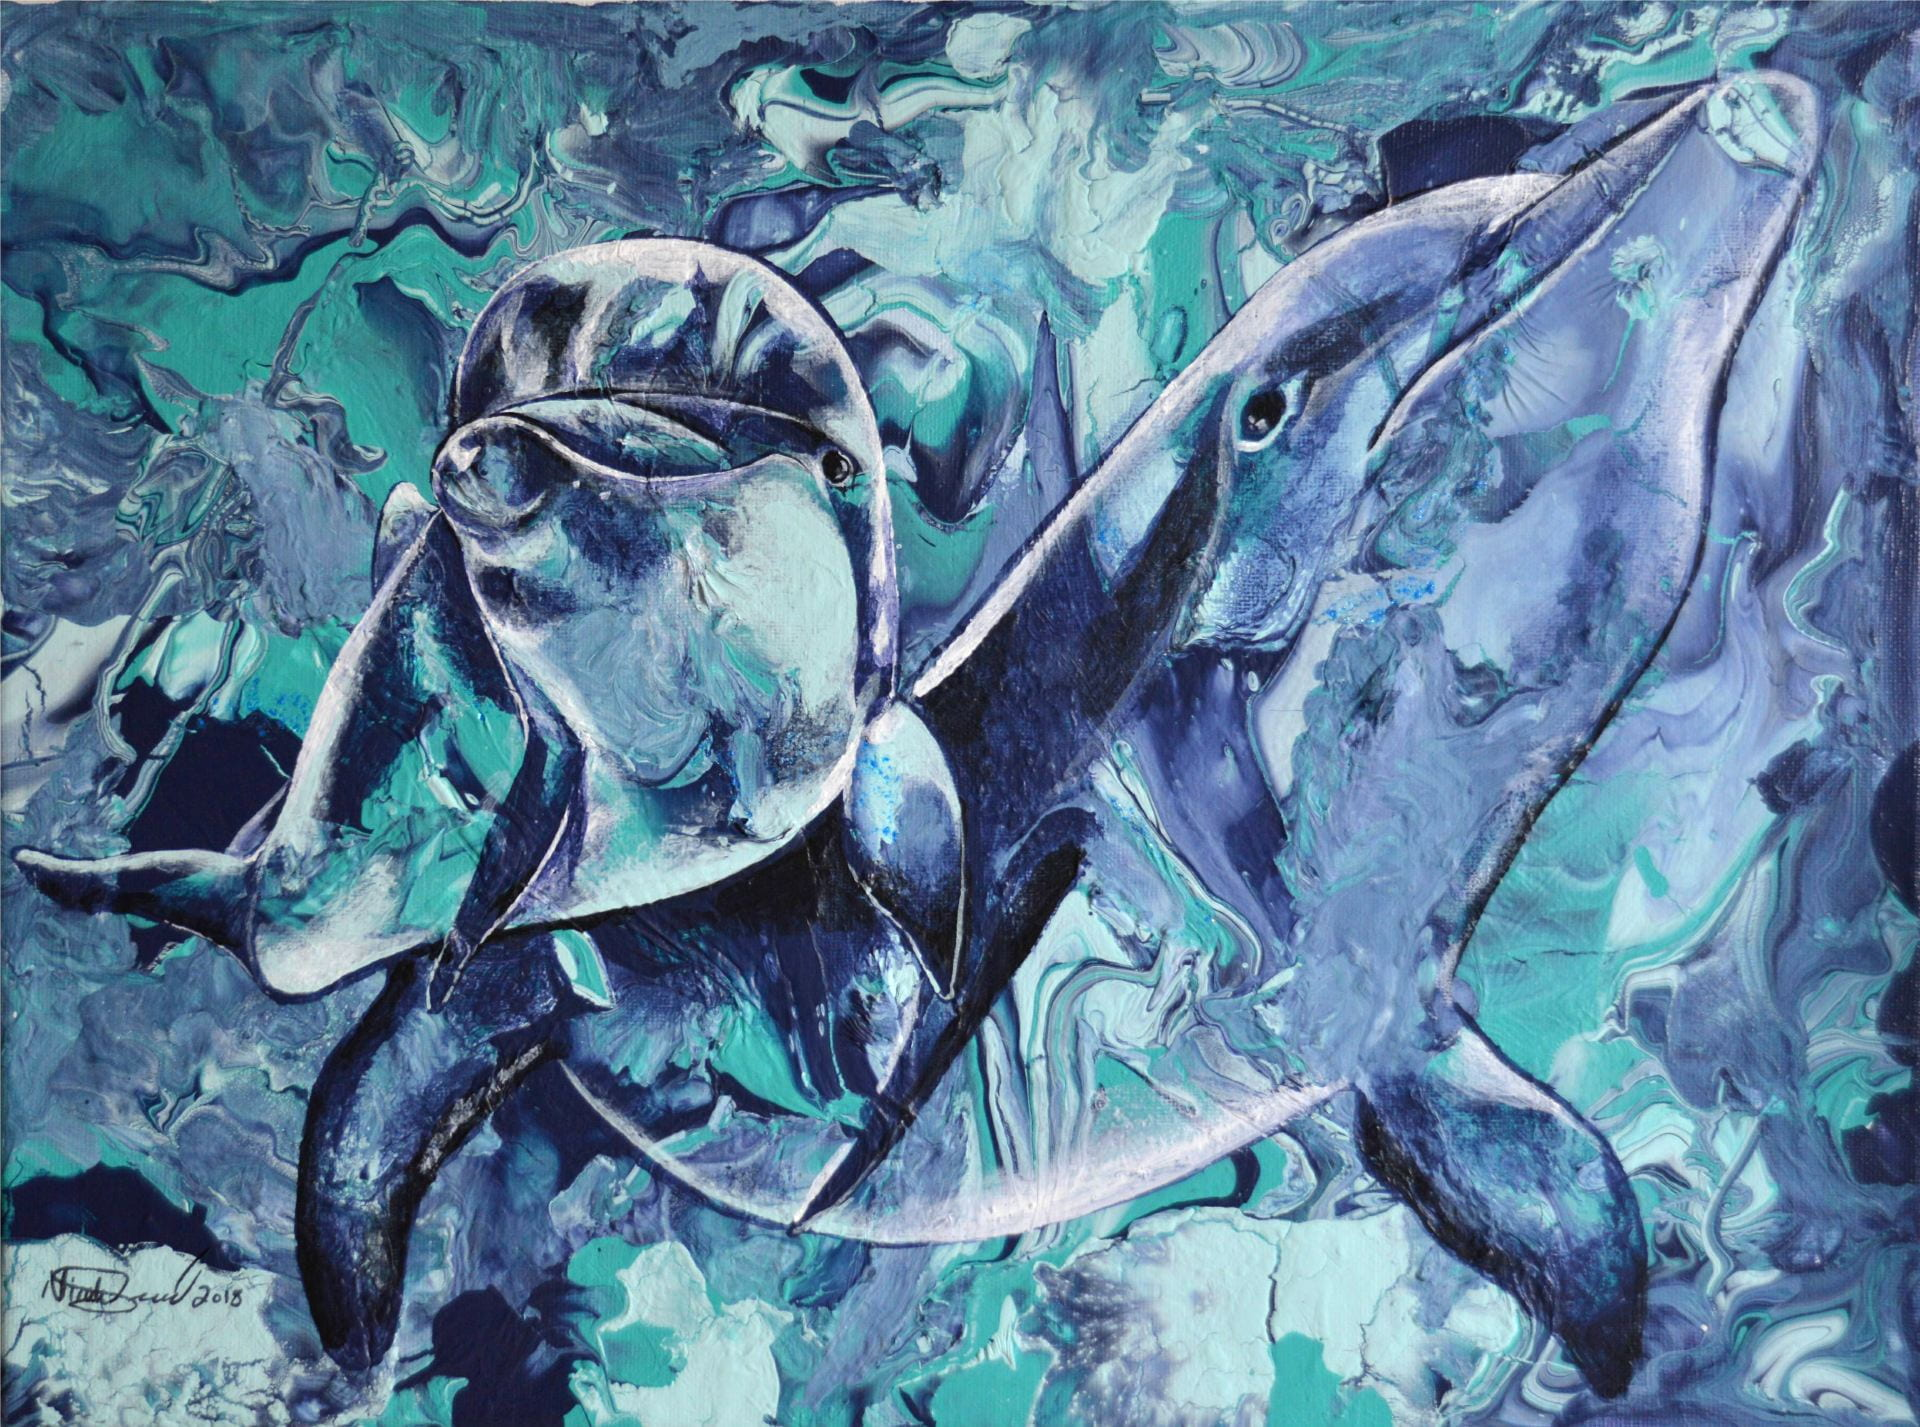 Painting created by Nicole Seacord, patient and titled Dolphins